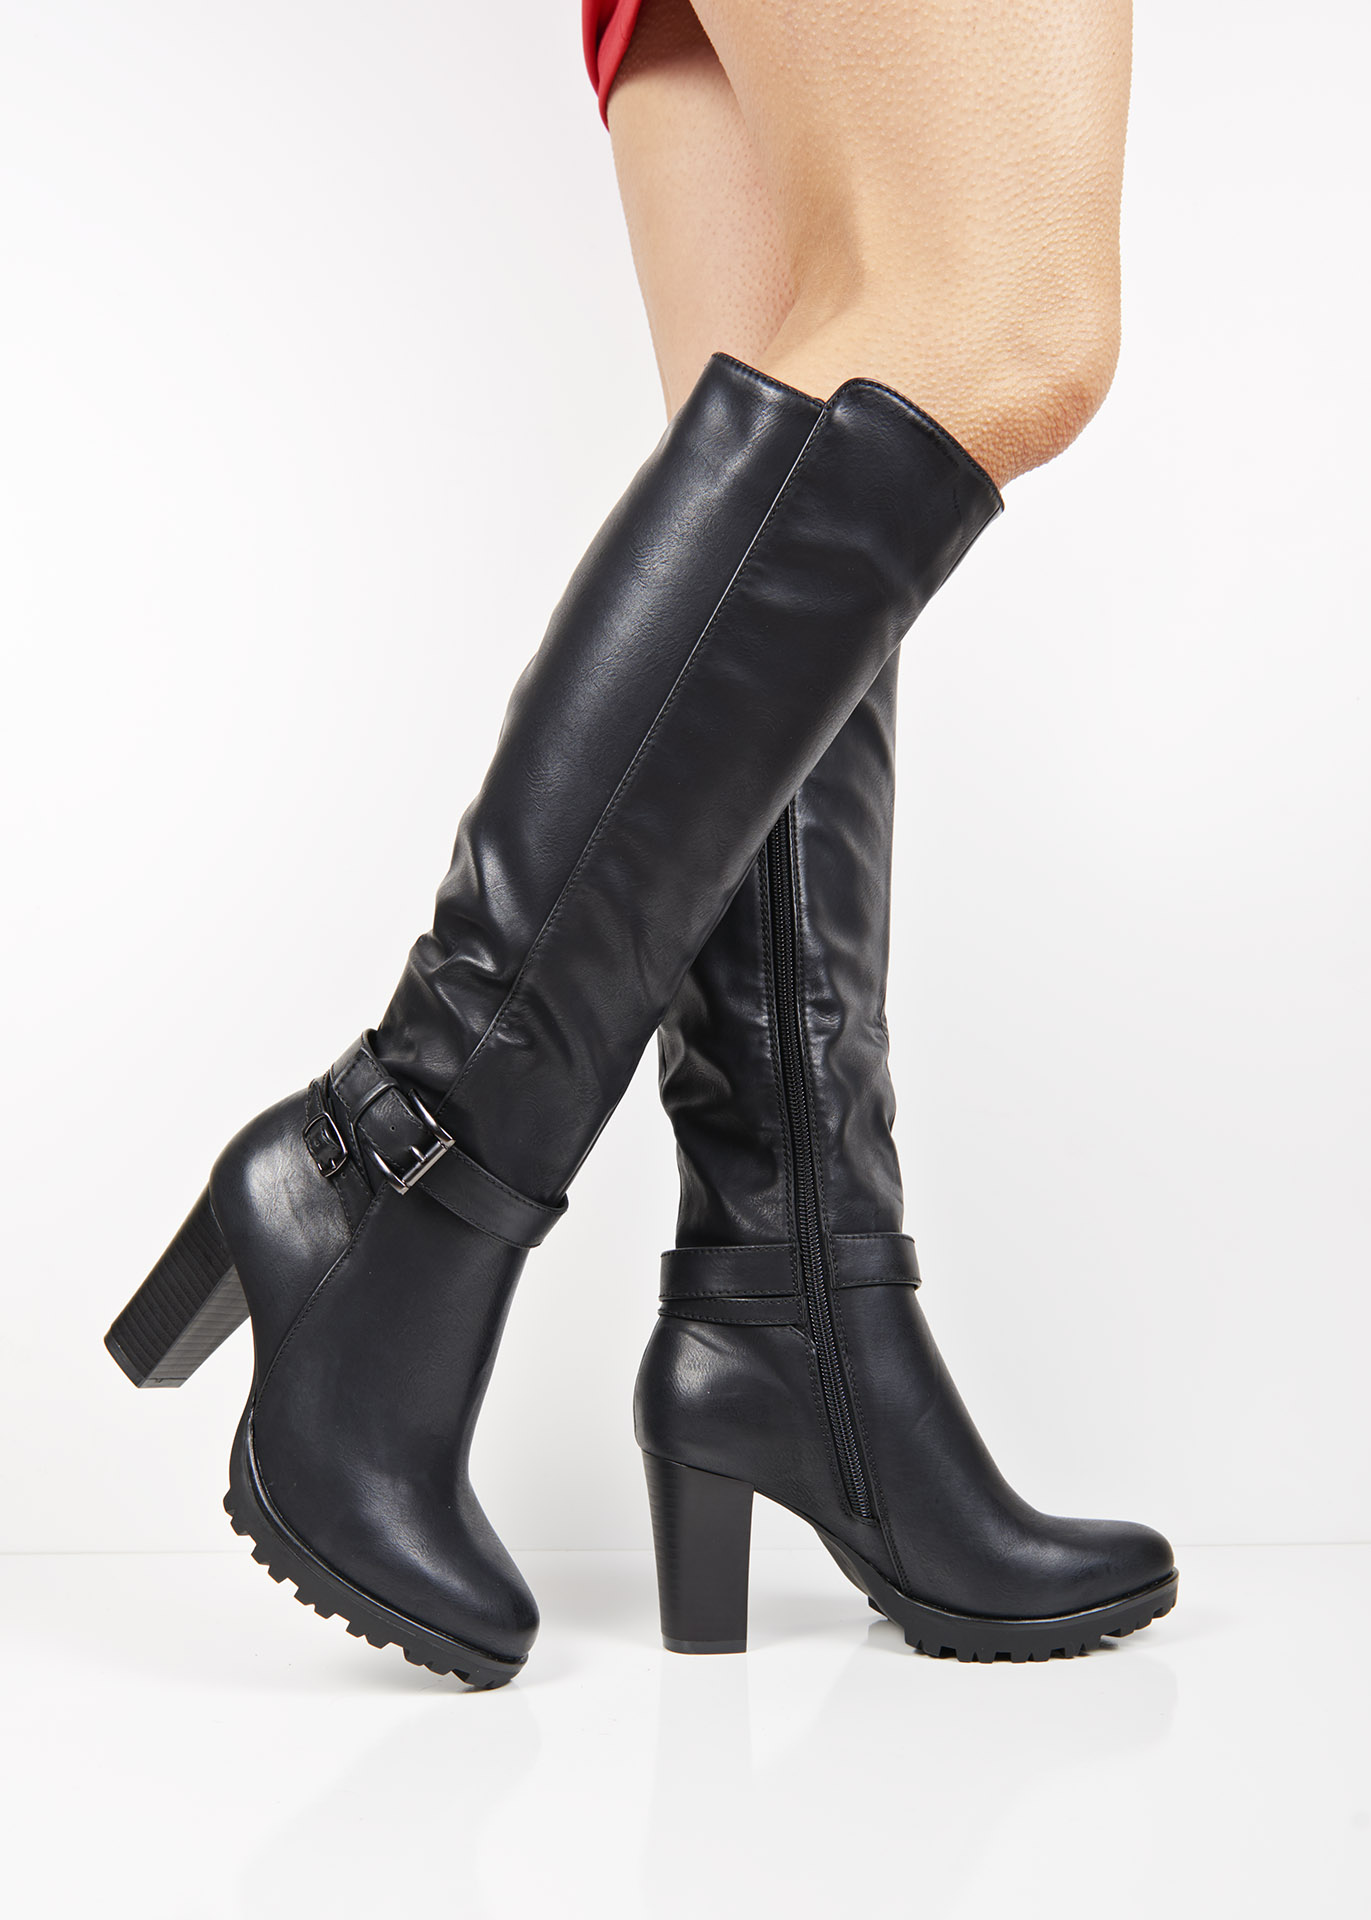 a13eb257320 ... Boots F92 Black buckle block heel knee high boots. 🔍 -33%. Previous   Next